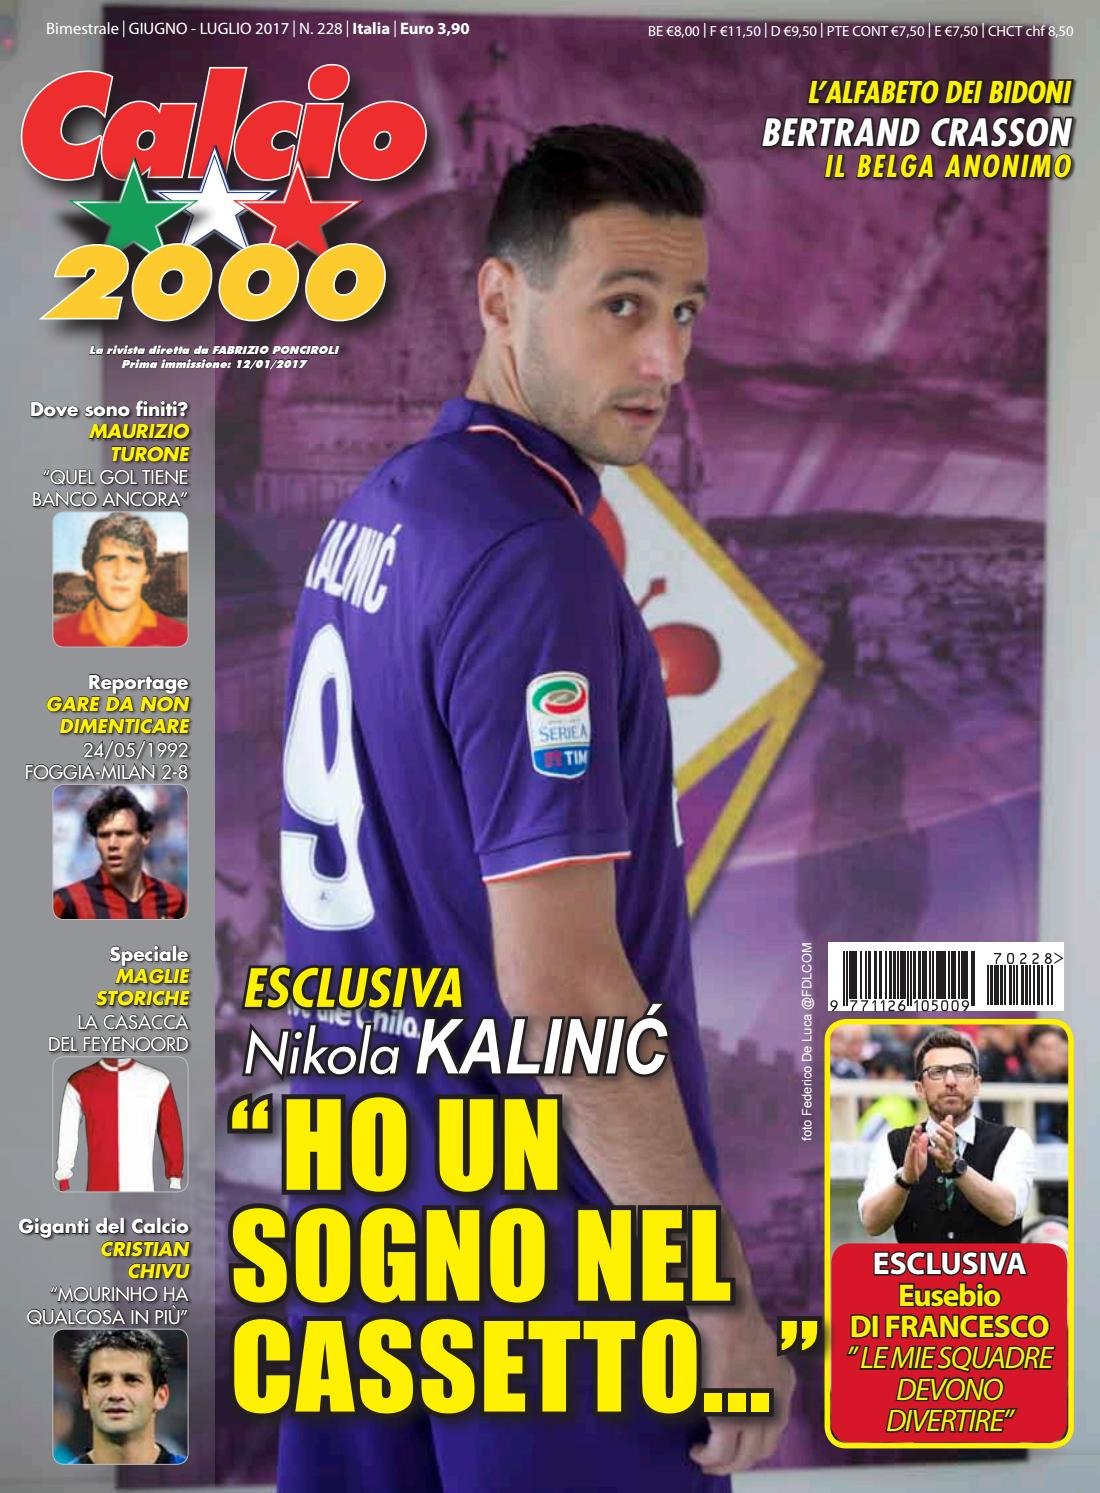 6f57a763e Calcio 2000 n.228 by TC&C SRL - issuu